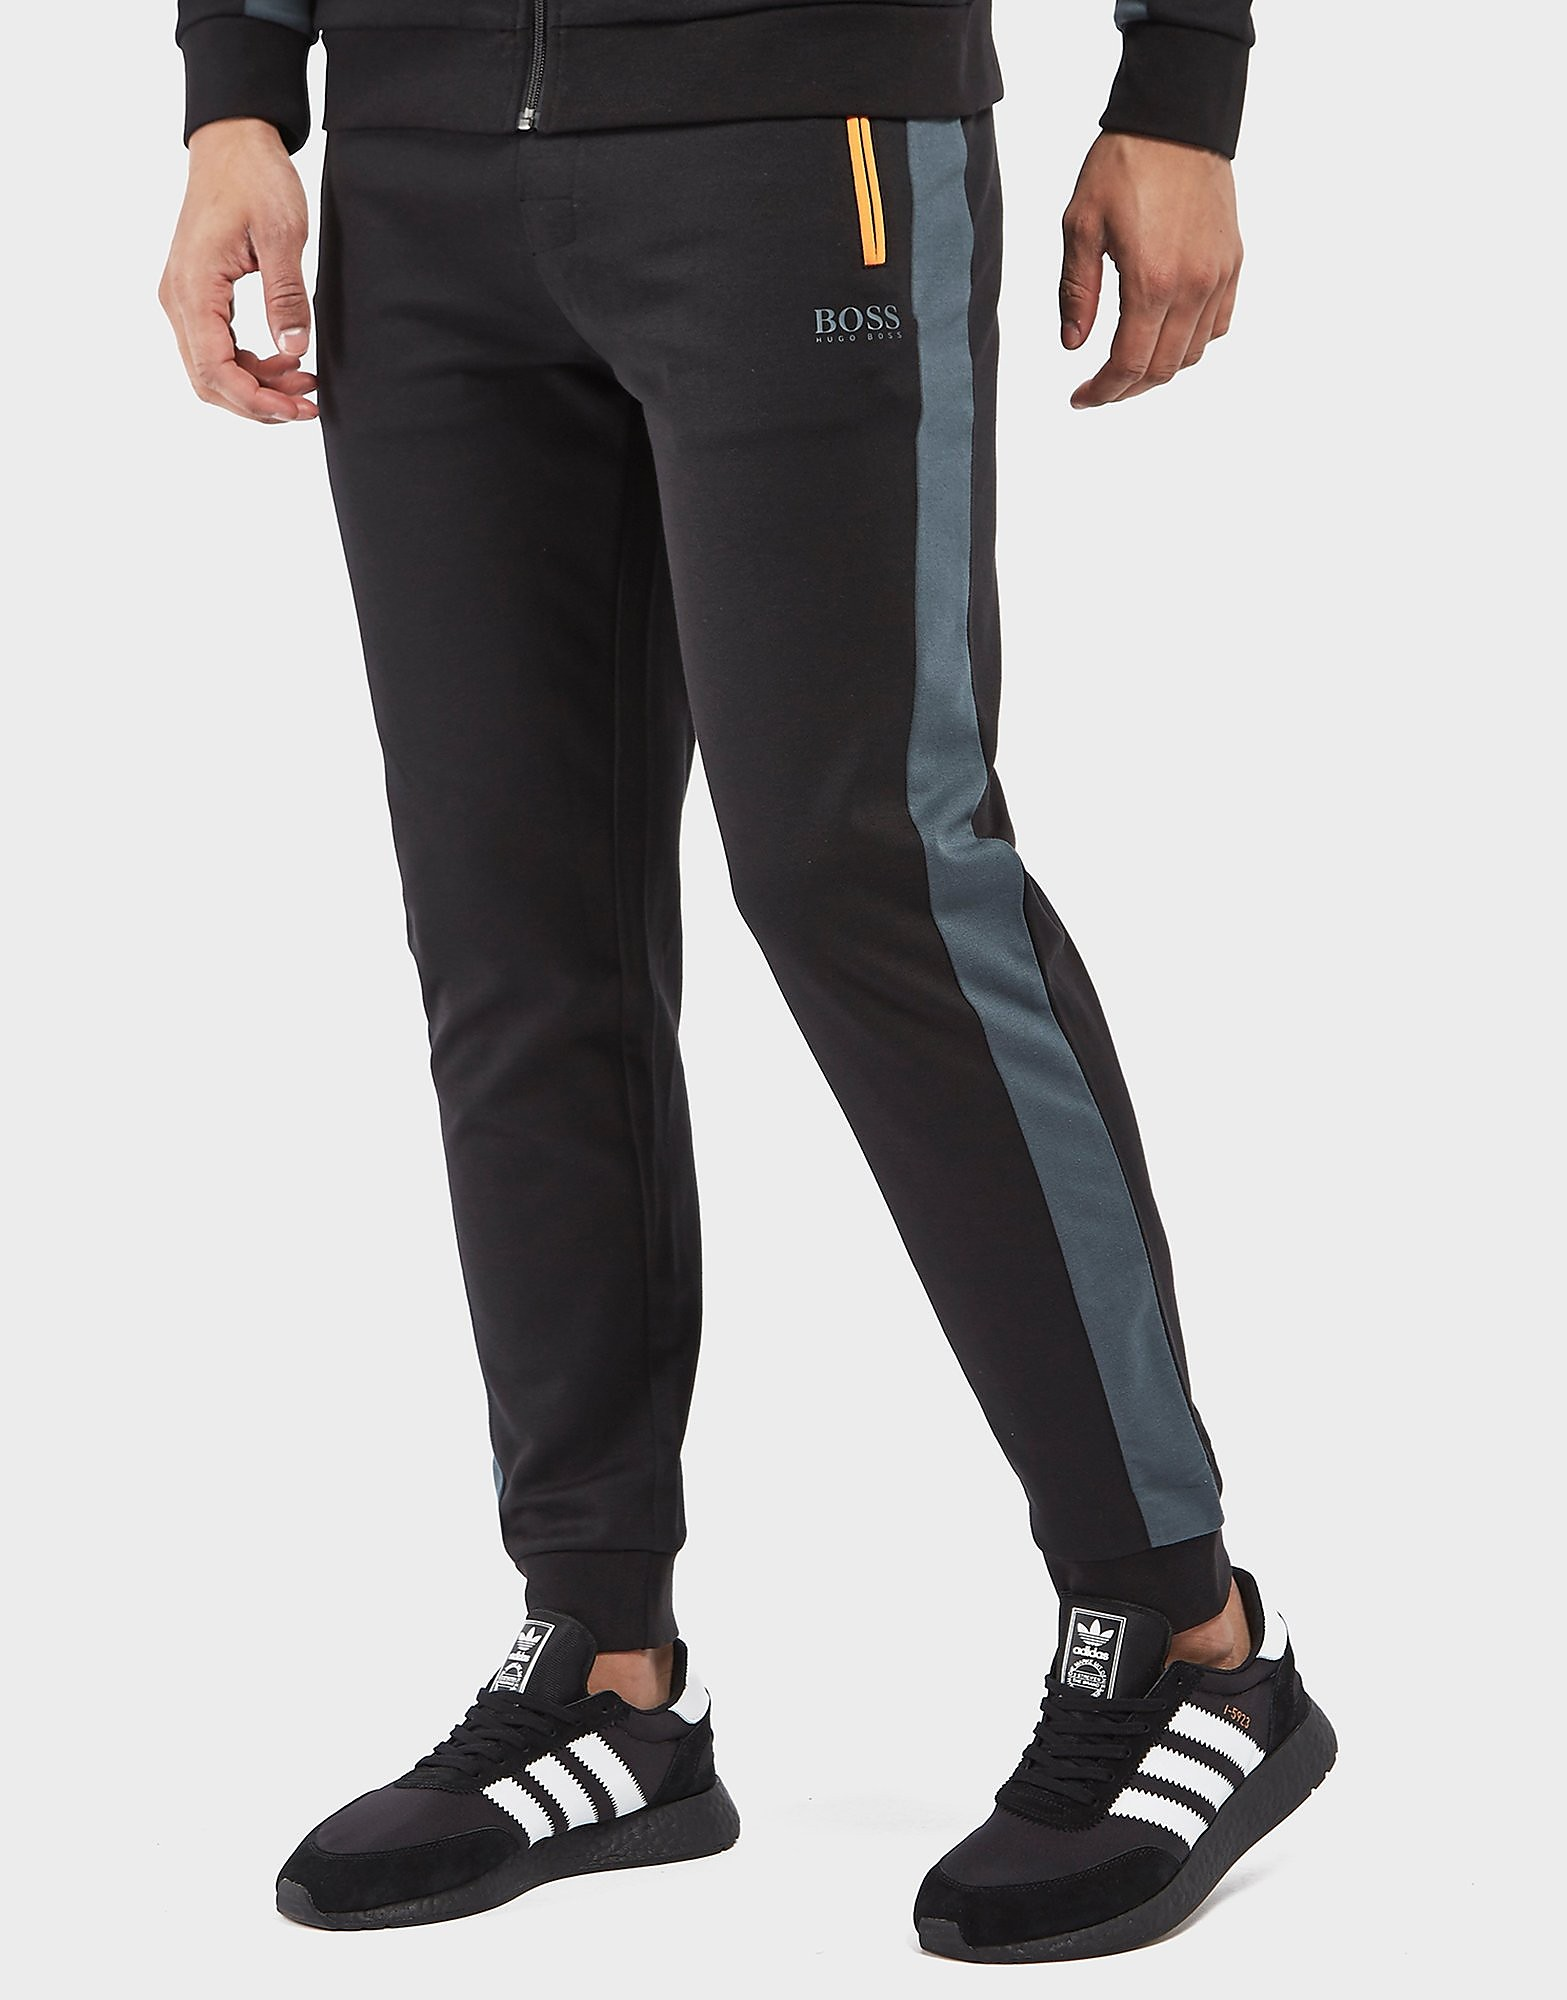 BOSS Poly Pique Cuffed Track Pants